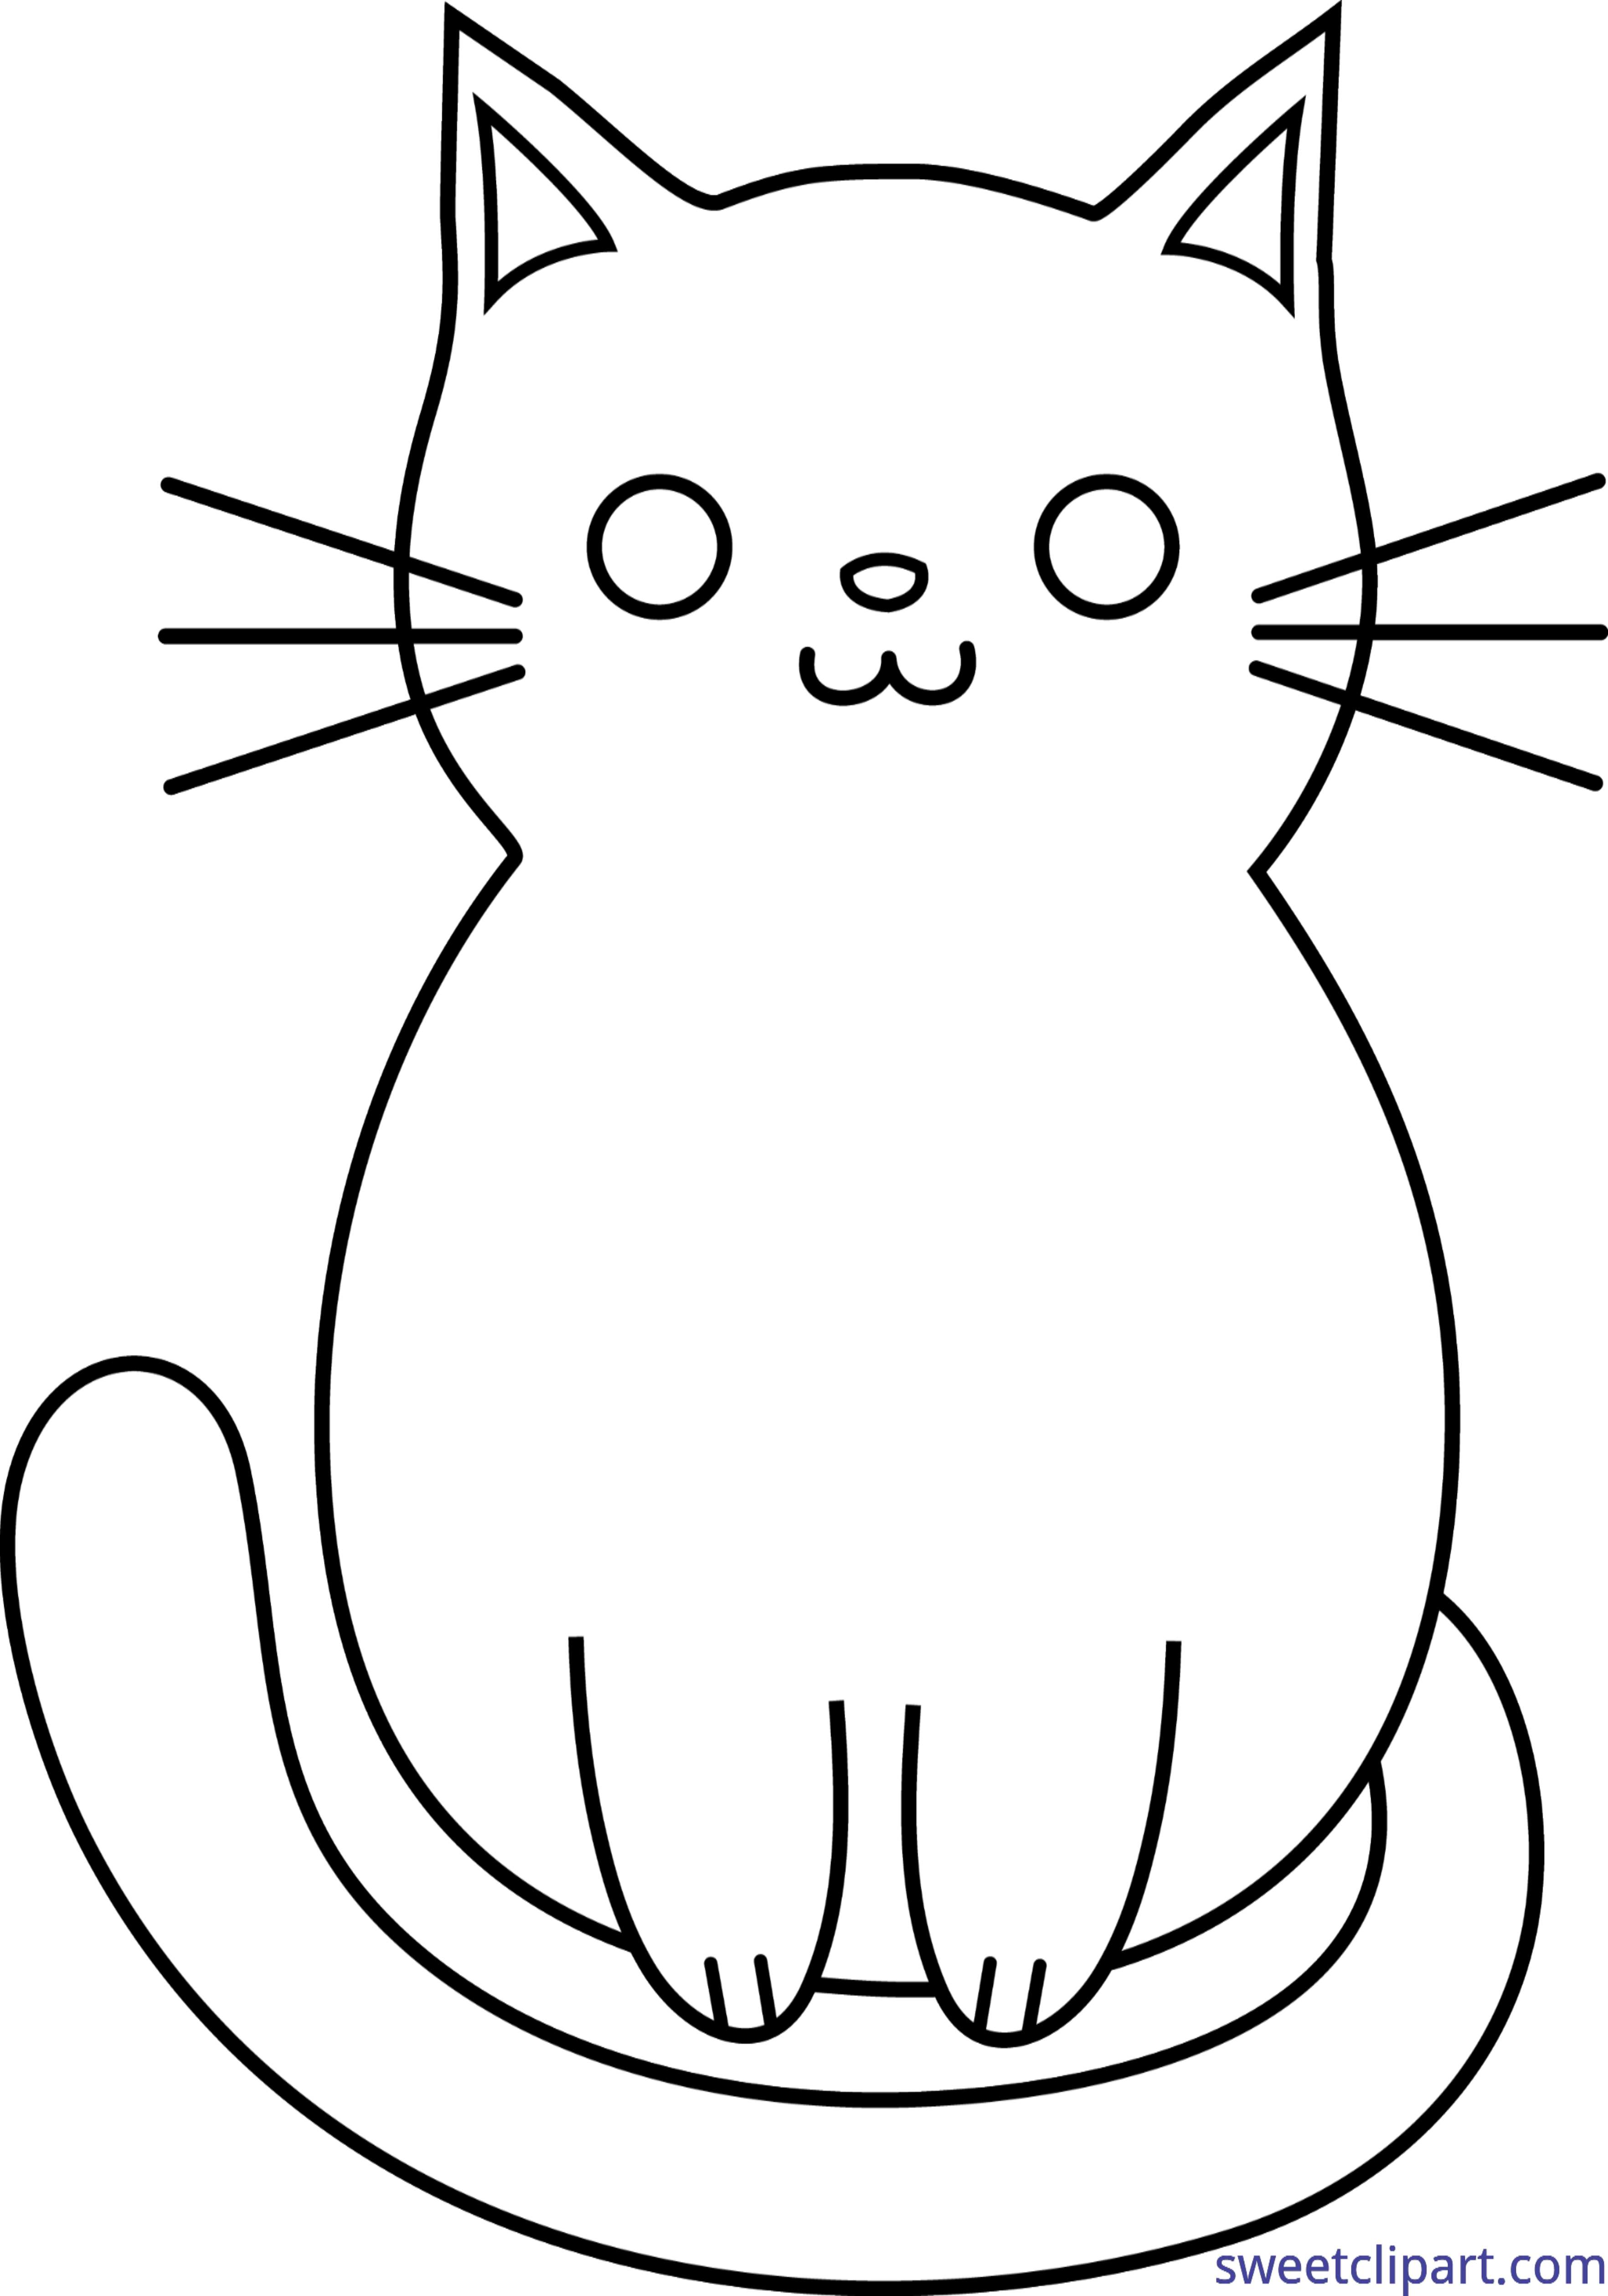 Cat head black and white clipart jpg freeuse download Cat Cute Lineart Clip Art - Sweet Clip Art jpg freeuse download